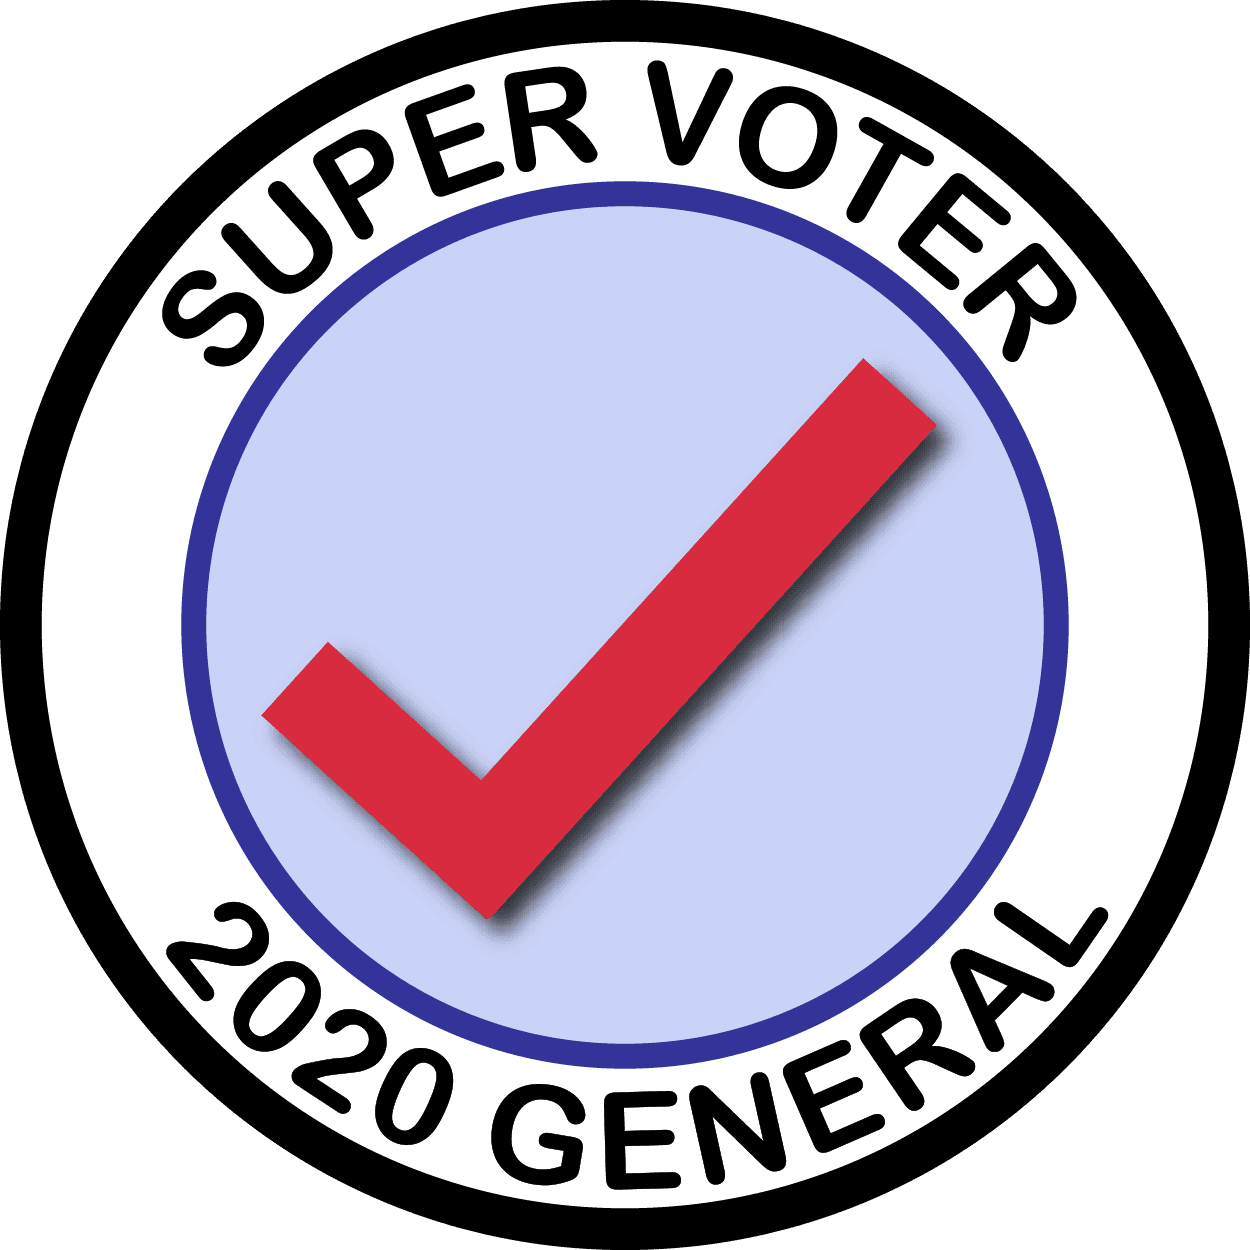 Super Voter 6 Opens in new window